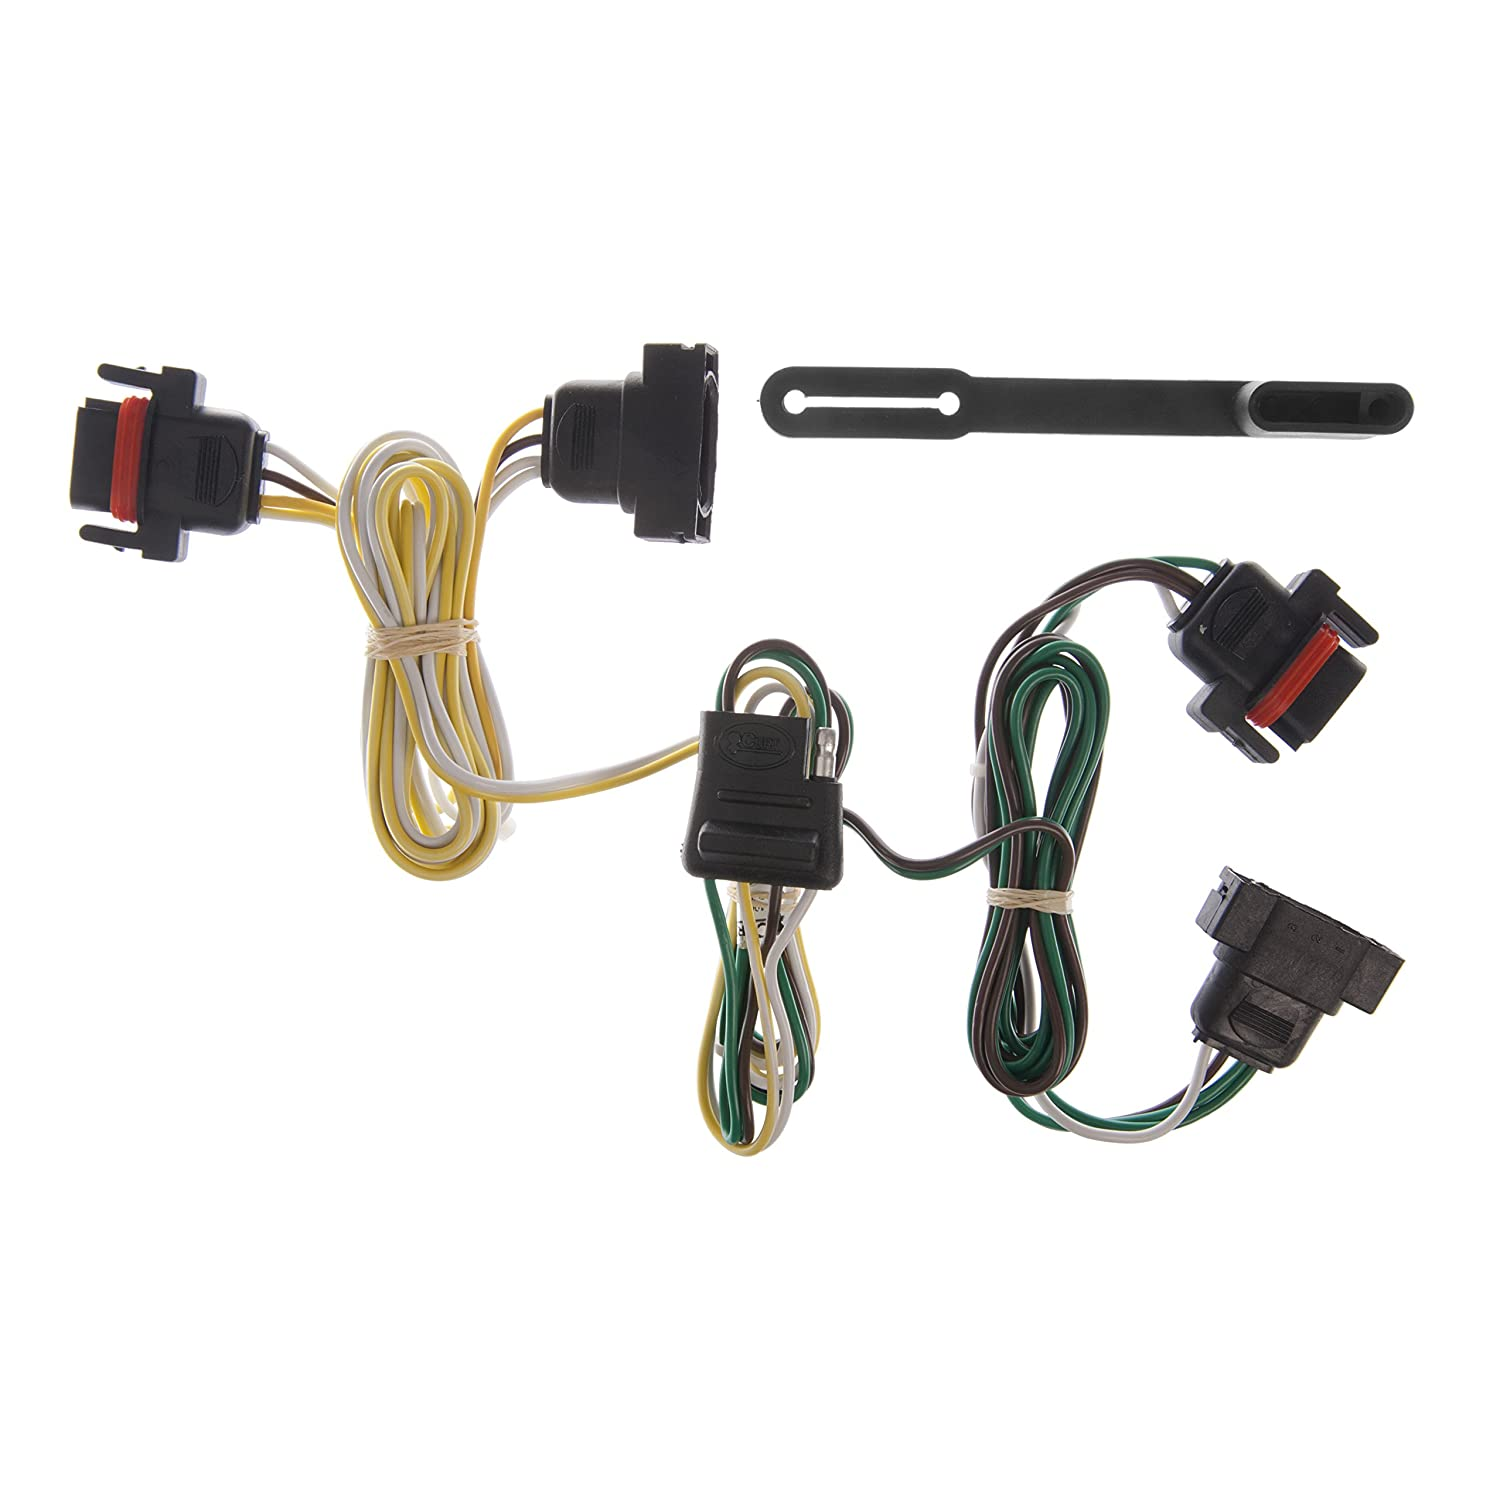 Amazon.com: CURT Trailer Hitch, Wiring & Ball Mount for Dodge Dakota, Mitsubishi  Raider: Automotive